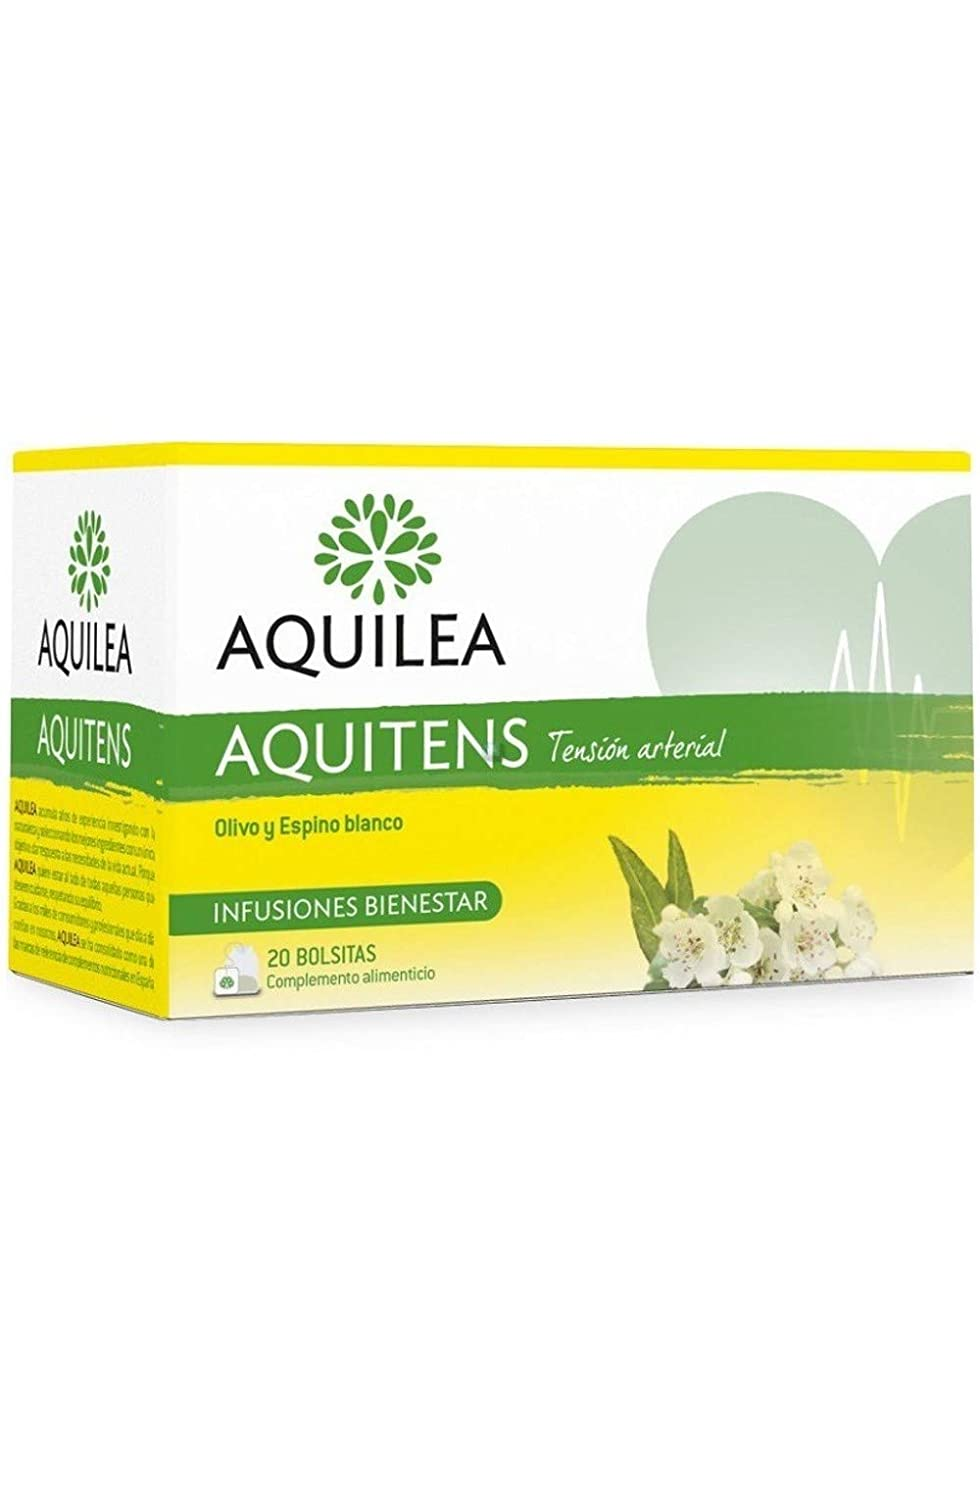 Amazon.com : Aquilea Aquitens Infusion 20 Units - Olive And Hawthorn - Healthy - Blood Pressure - Spain : Grocery & Gourmet Food